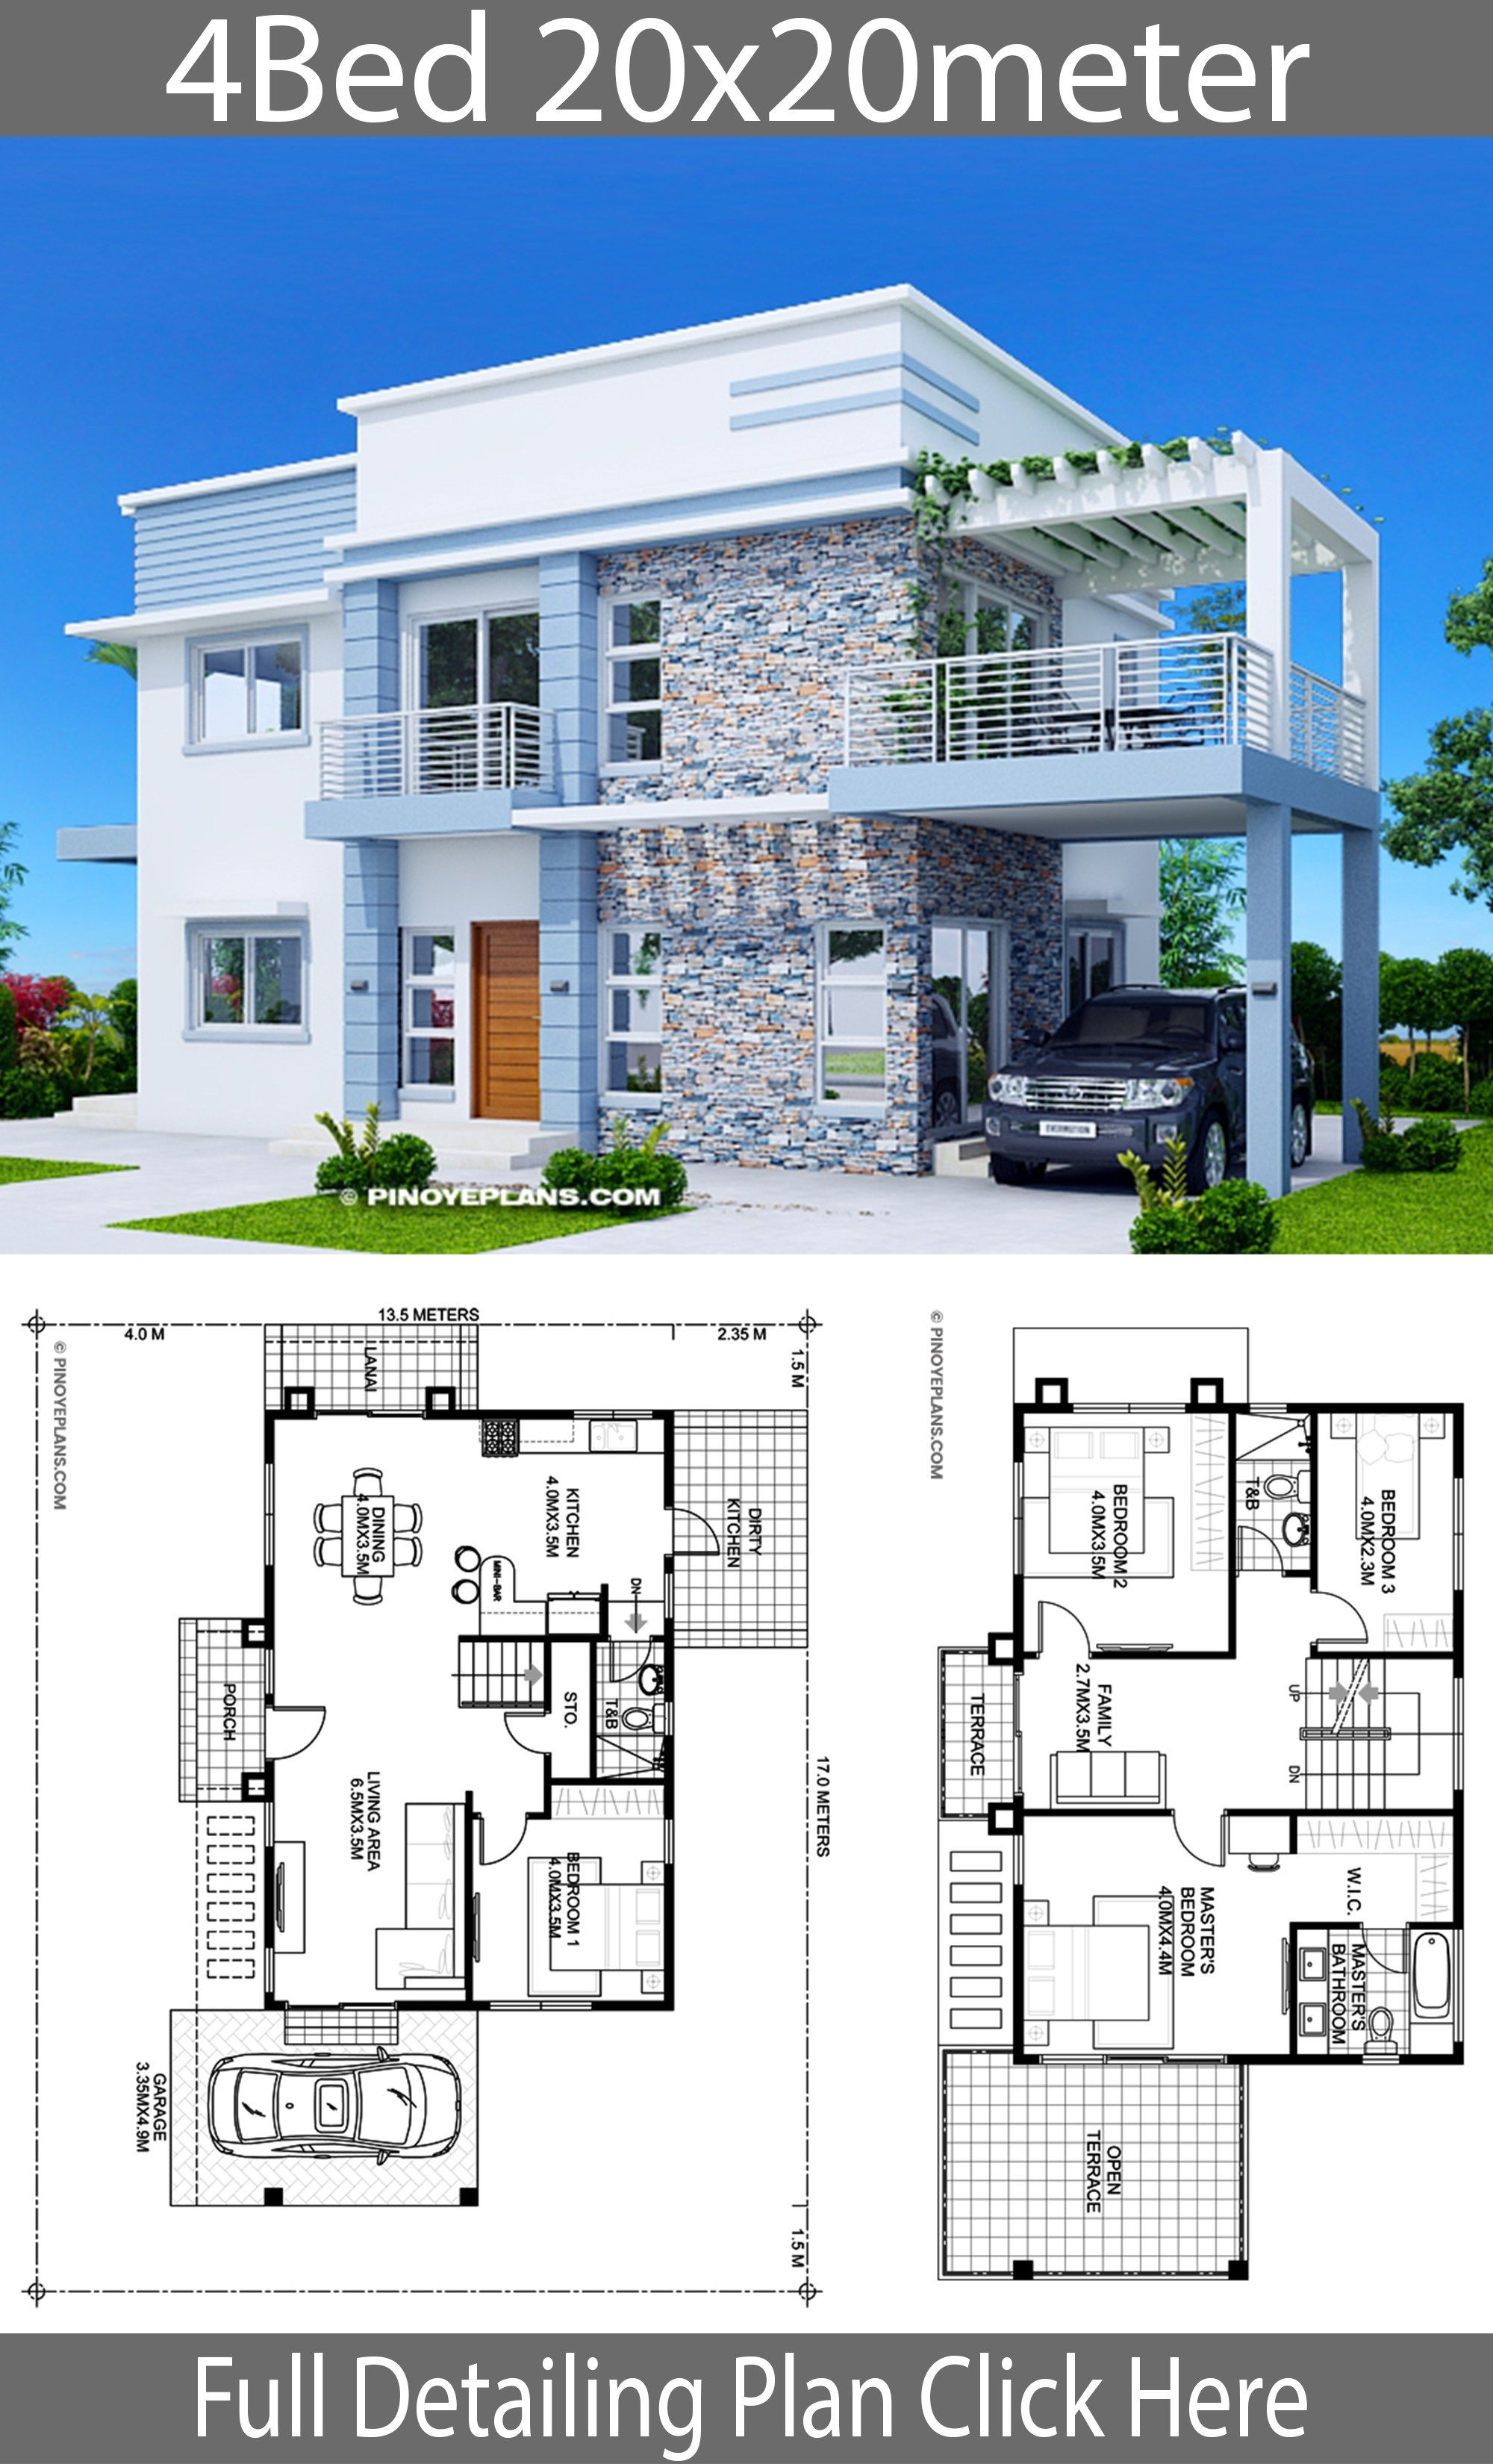 Home Design Plan 20x20m With 4 Bedrooms House Construction Plan House Plans Modern House Plans